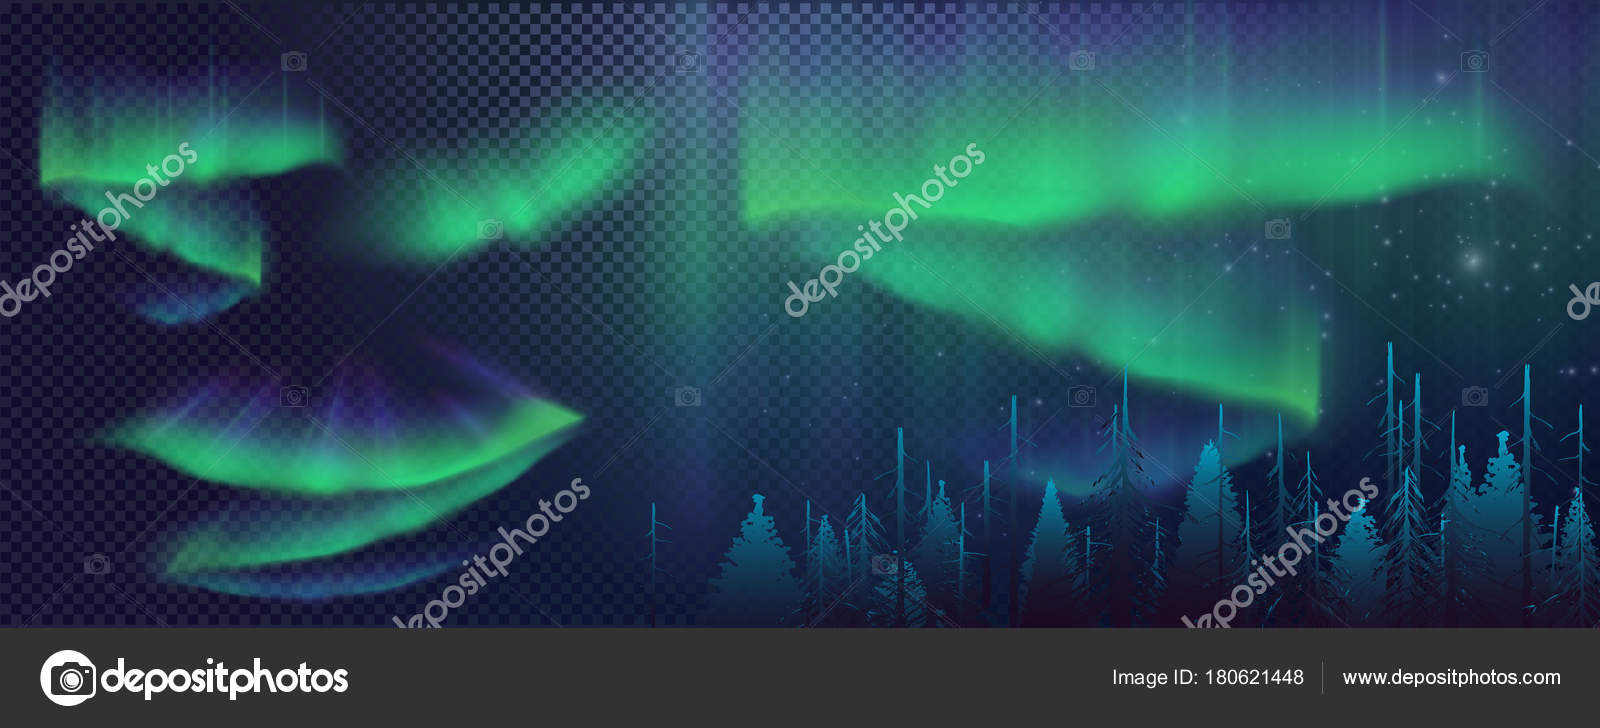 Night Sky Aurora Borealis Northern Lights Effect Realistic Colored